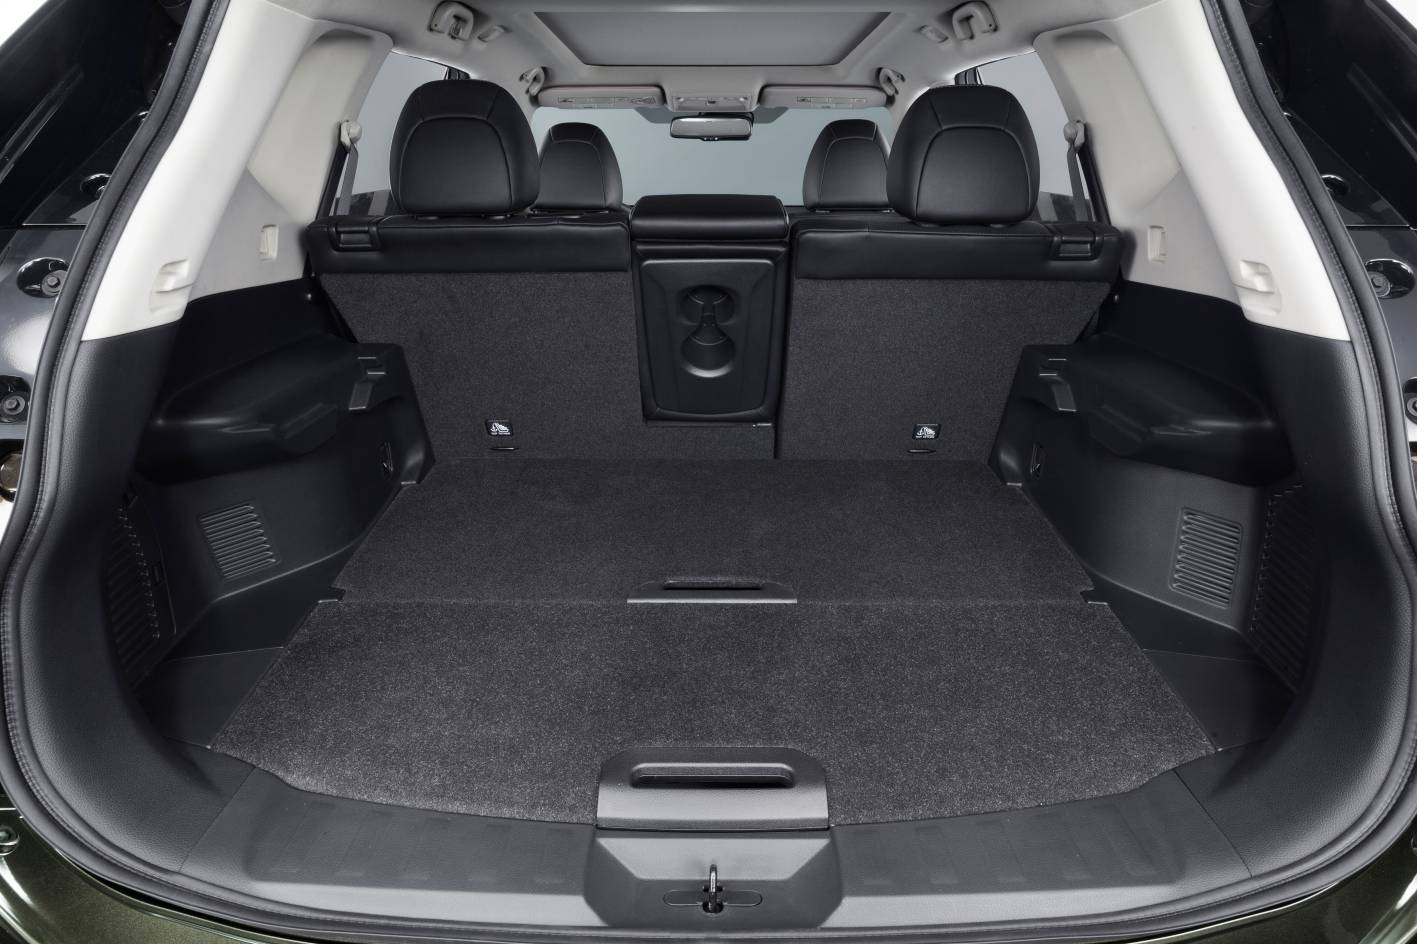 Nissan X Trail Luggage Space Forcegt Com